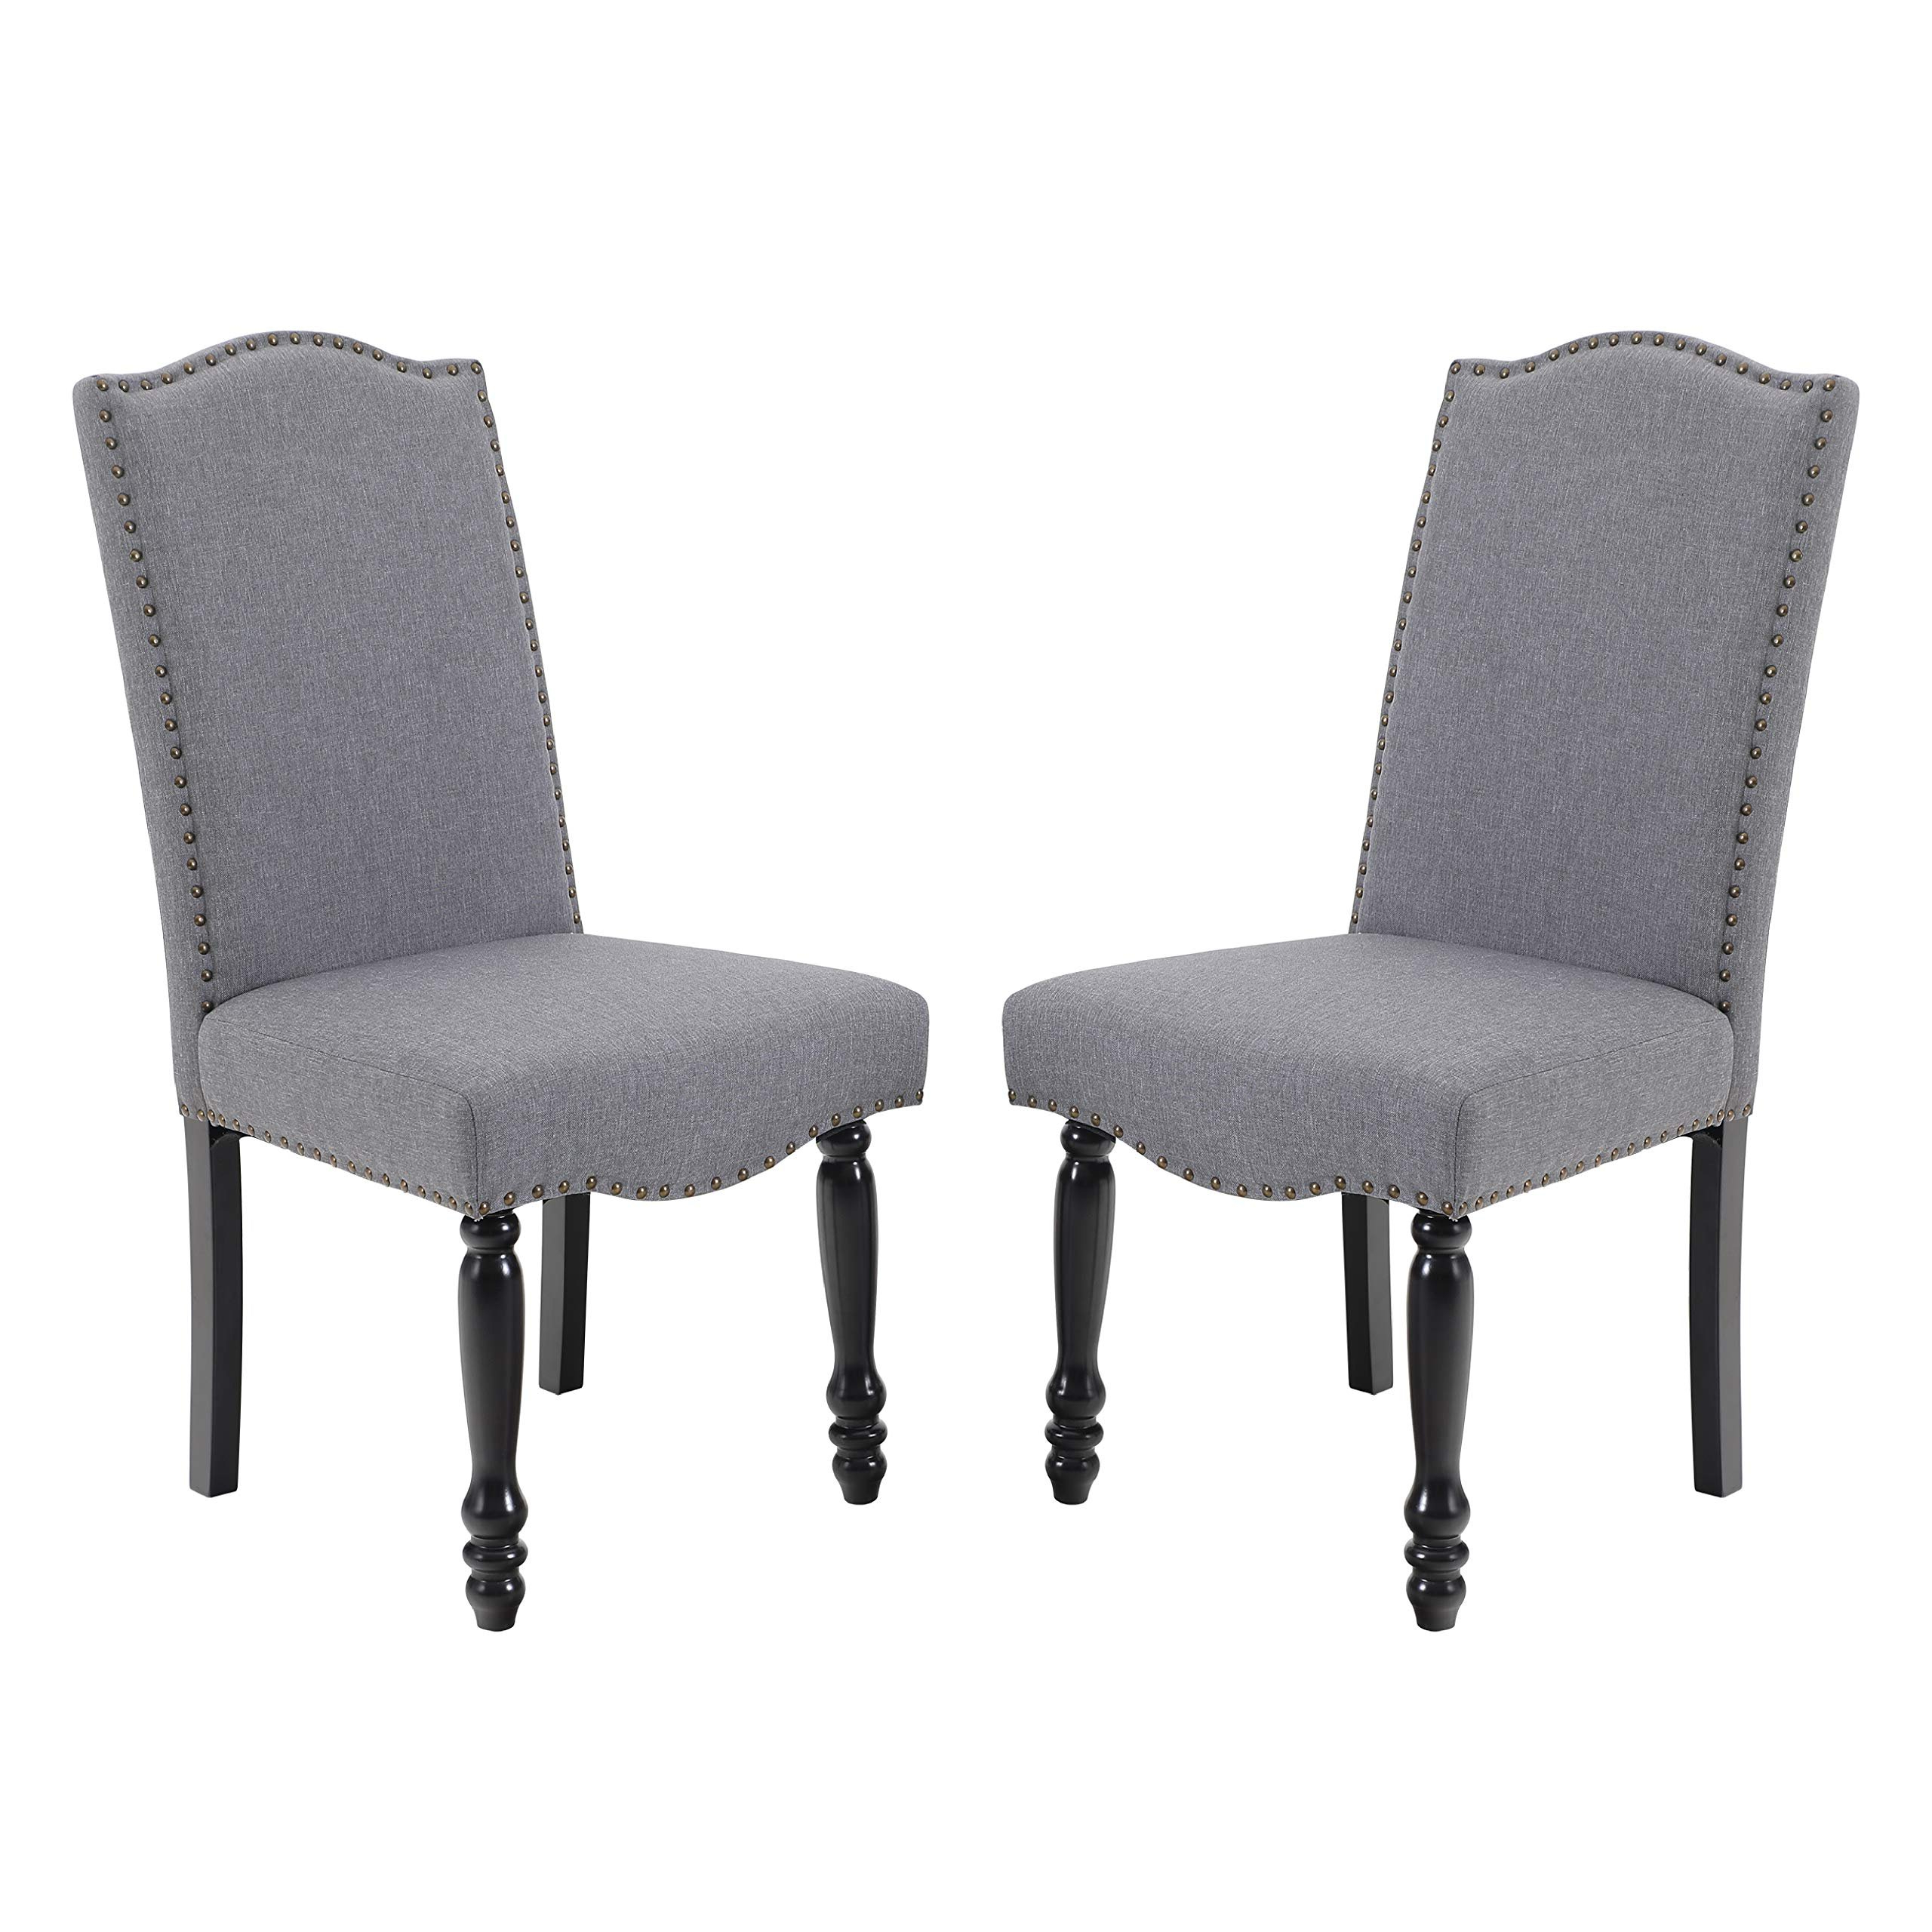 Wayfair In Madison Avenue Tufted Cotton Upholstered Dining Chairs (set Of 2) (View 2 of 20)